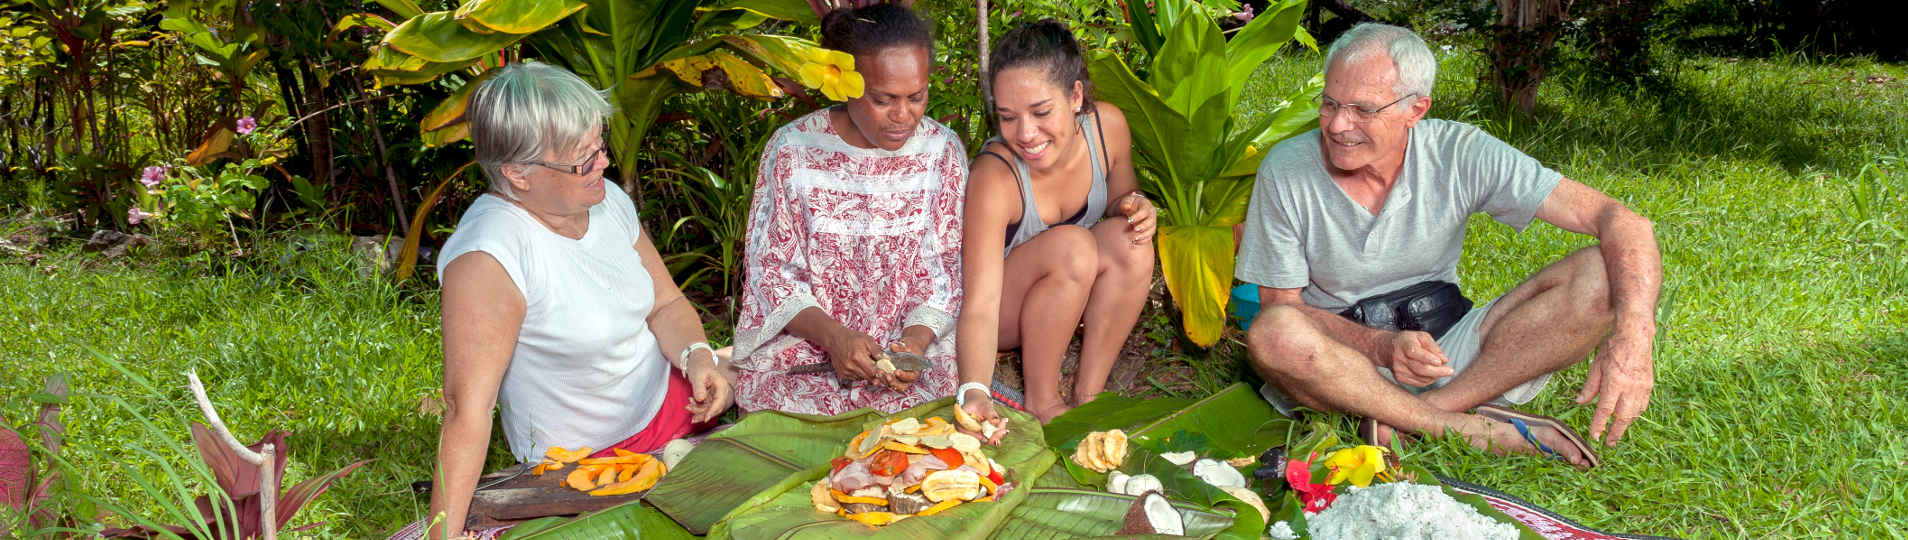 Preparing Kanak Bougnat in tribs New Caledonia